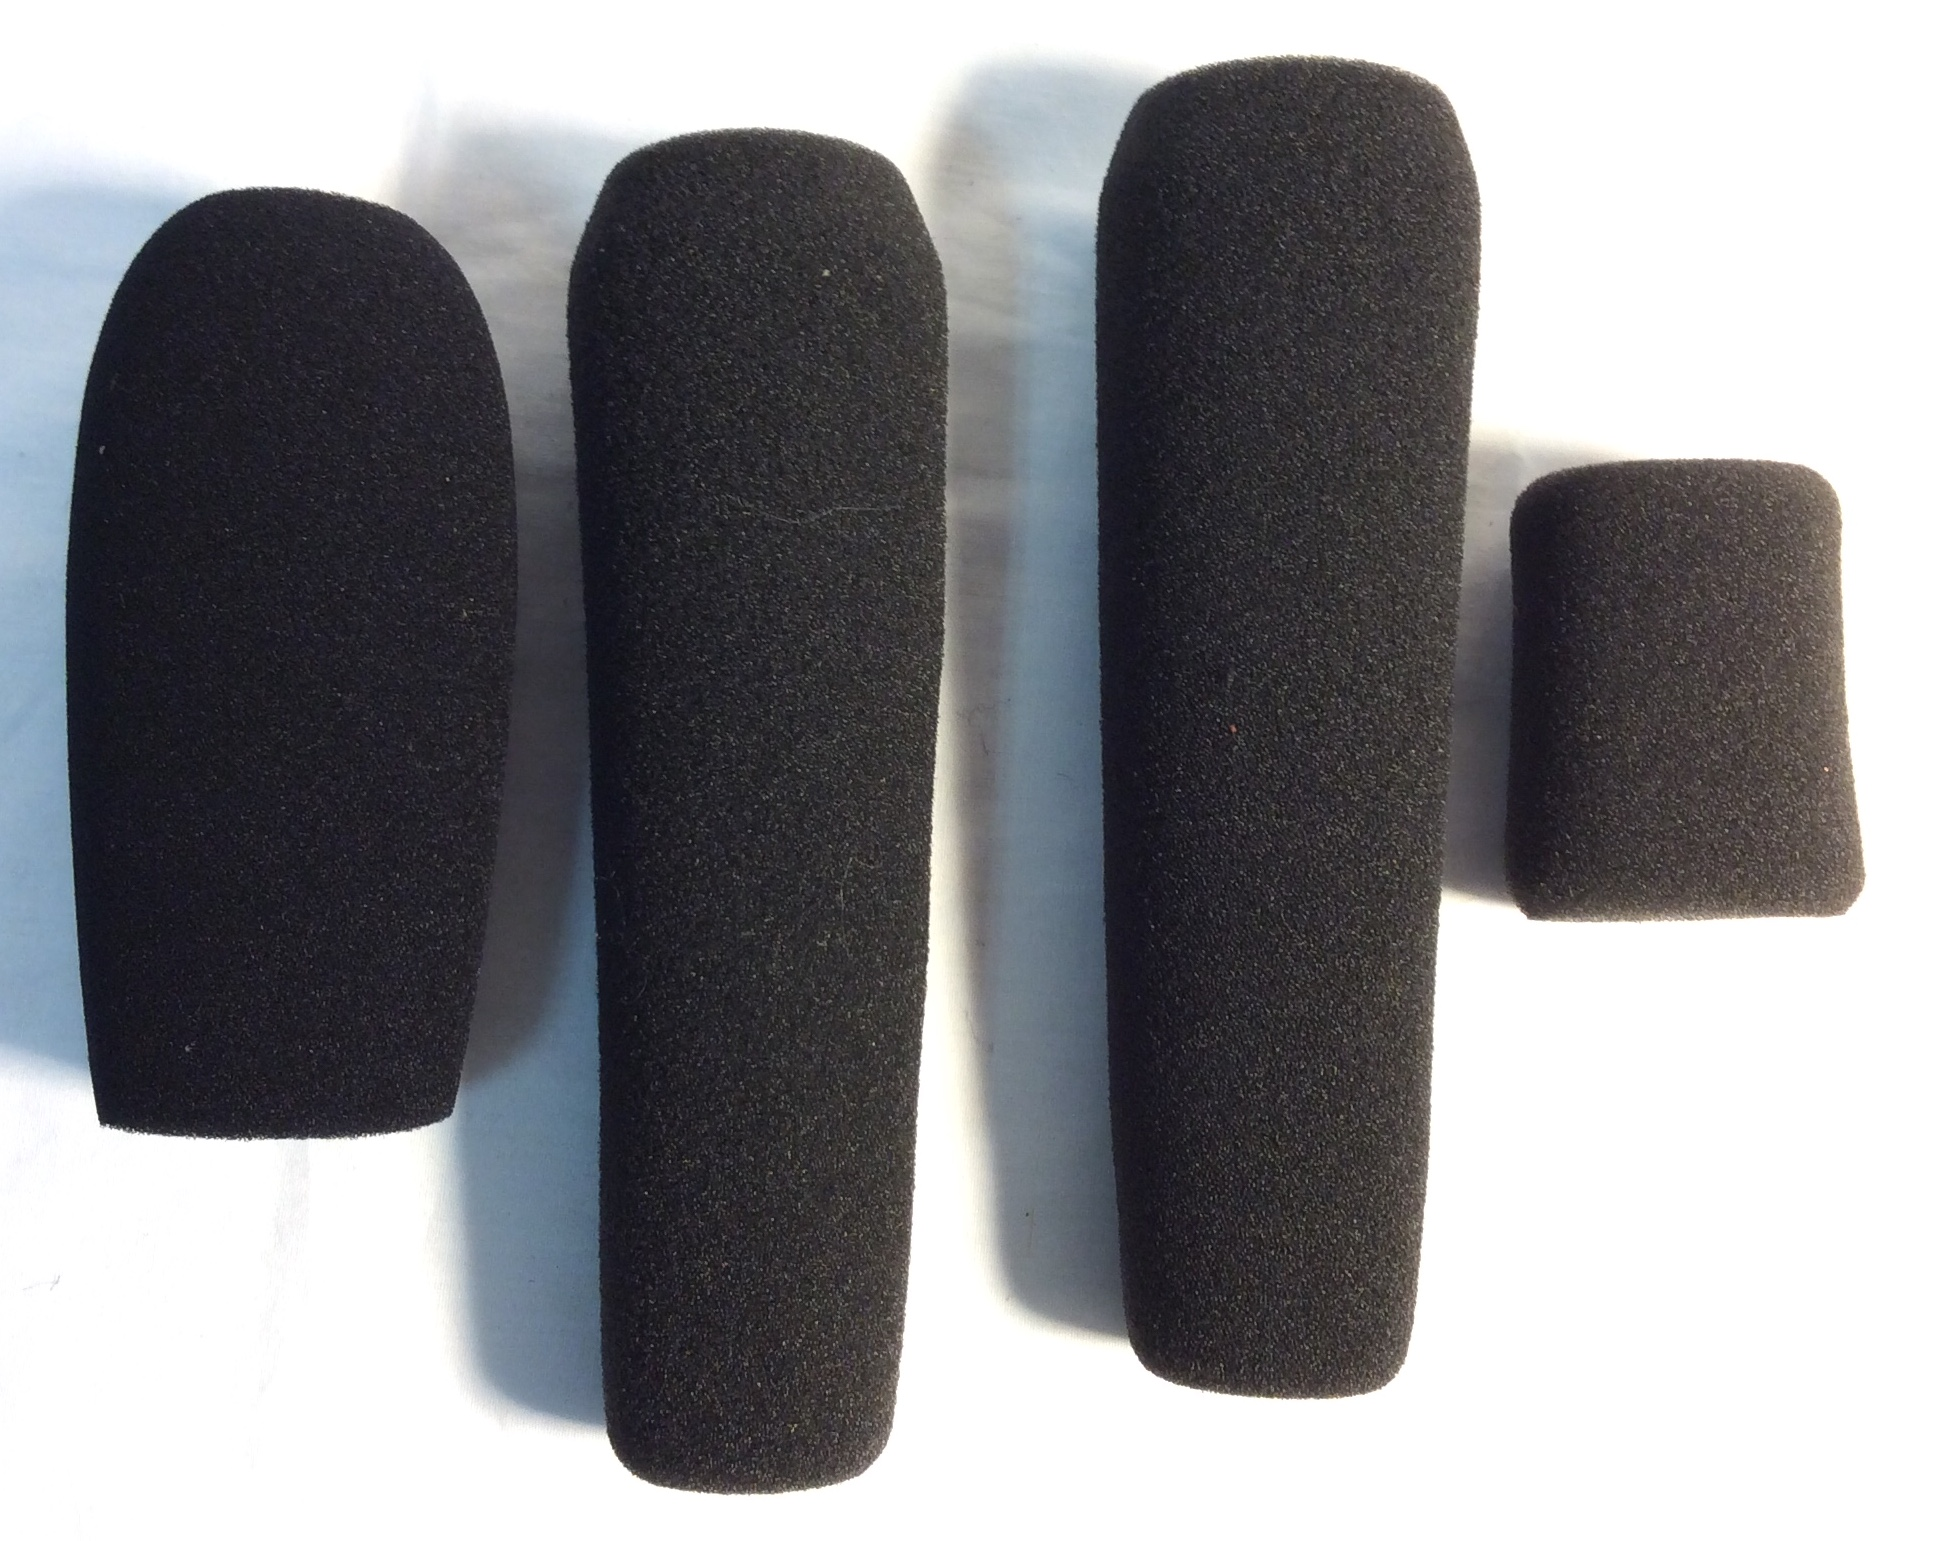 Microphone foam covers